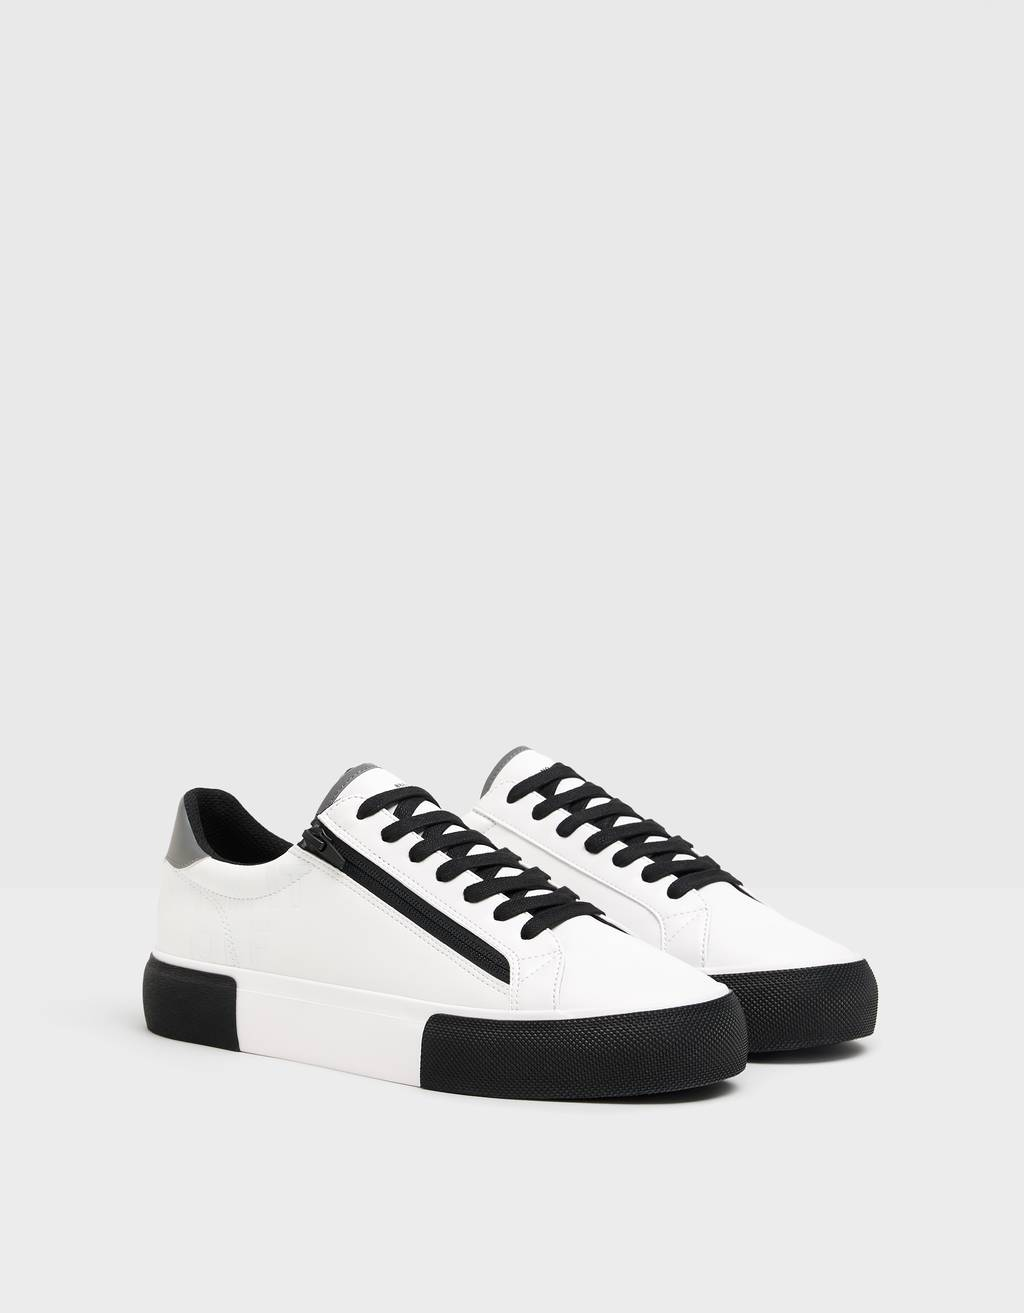 Men's contrast zip trainers.